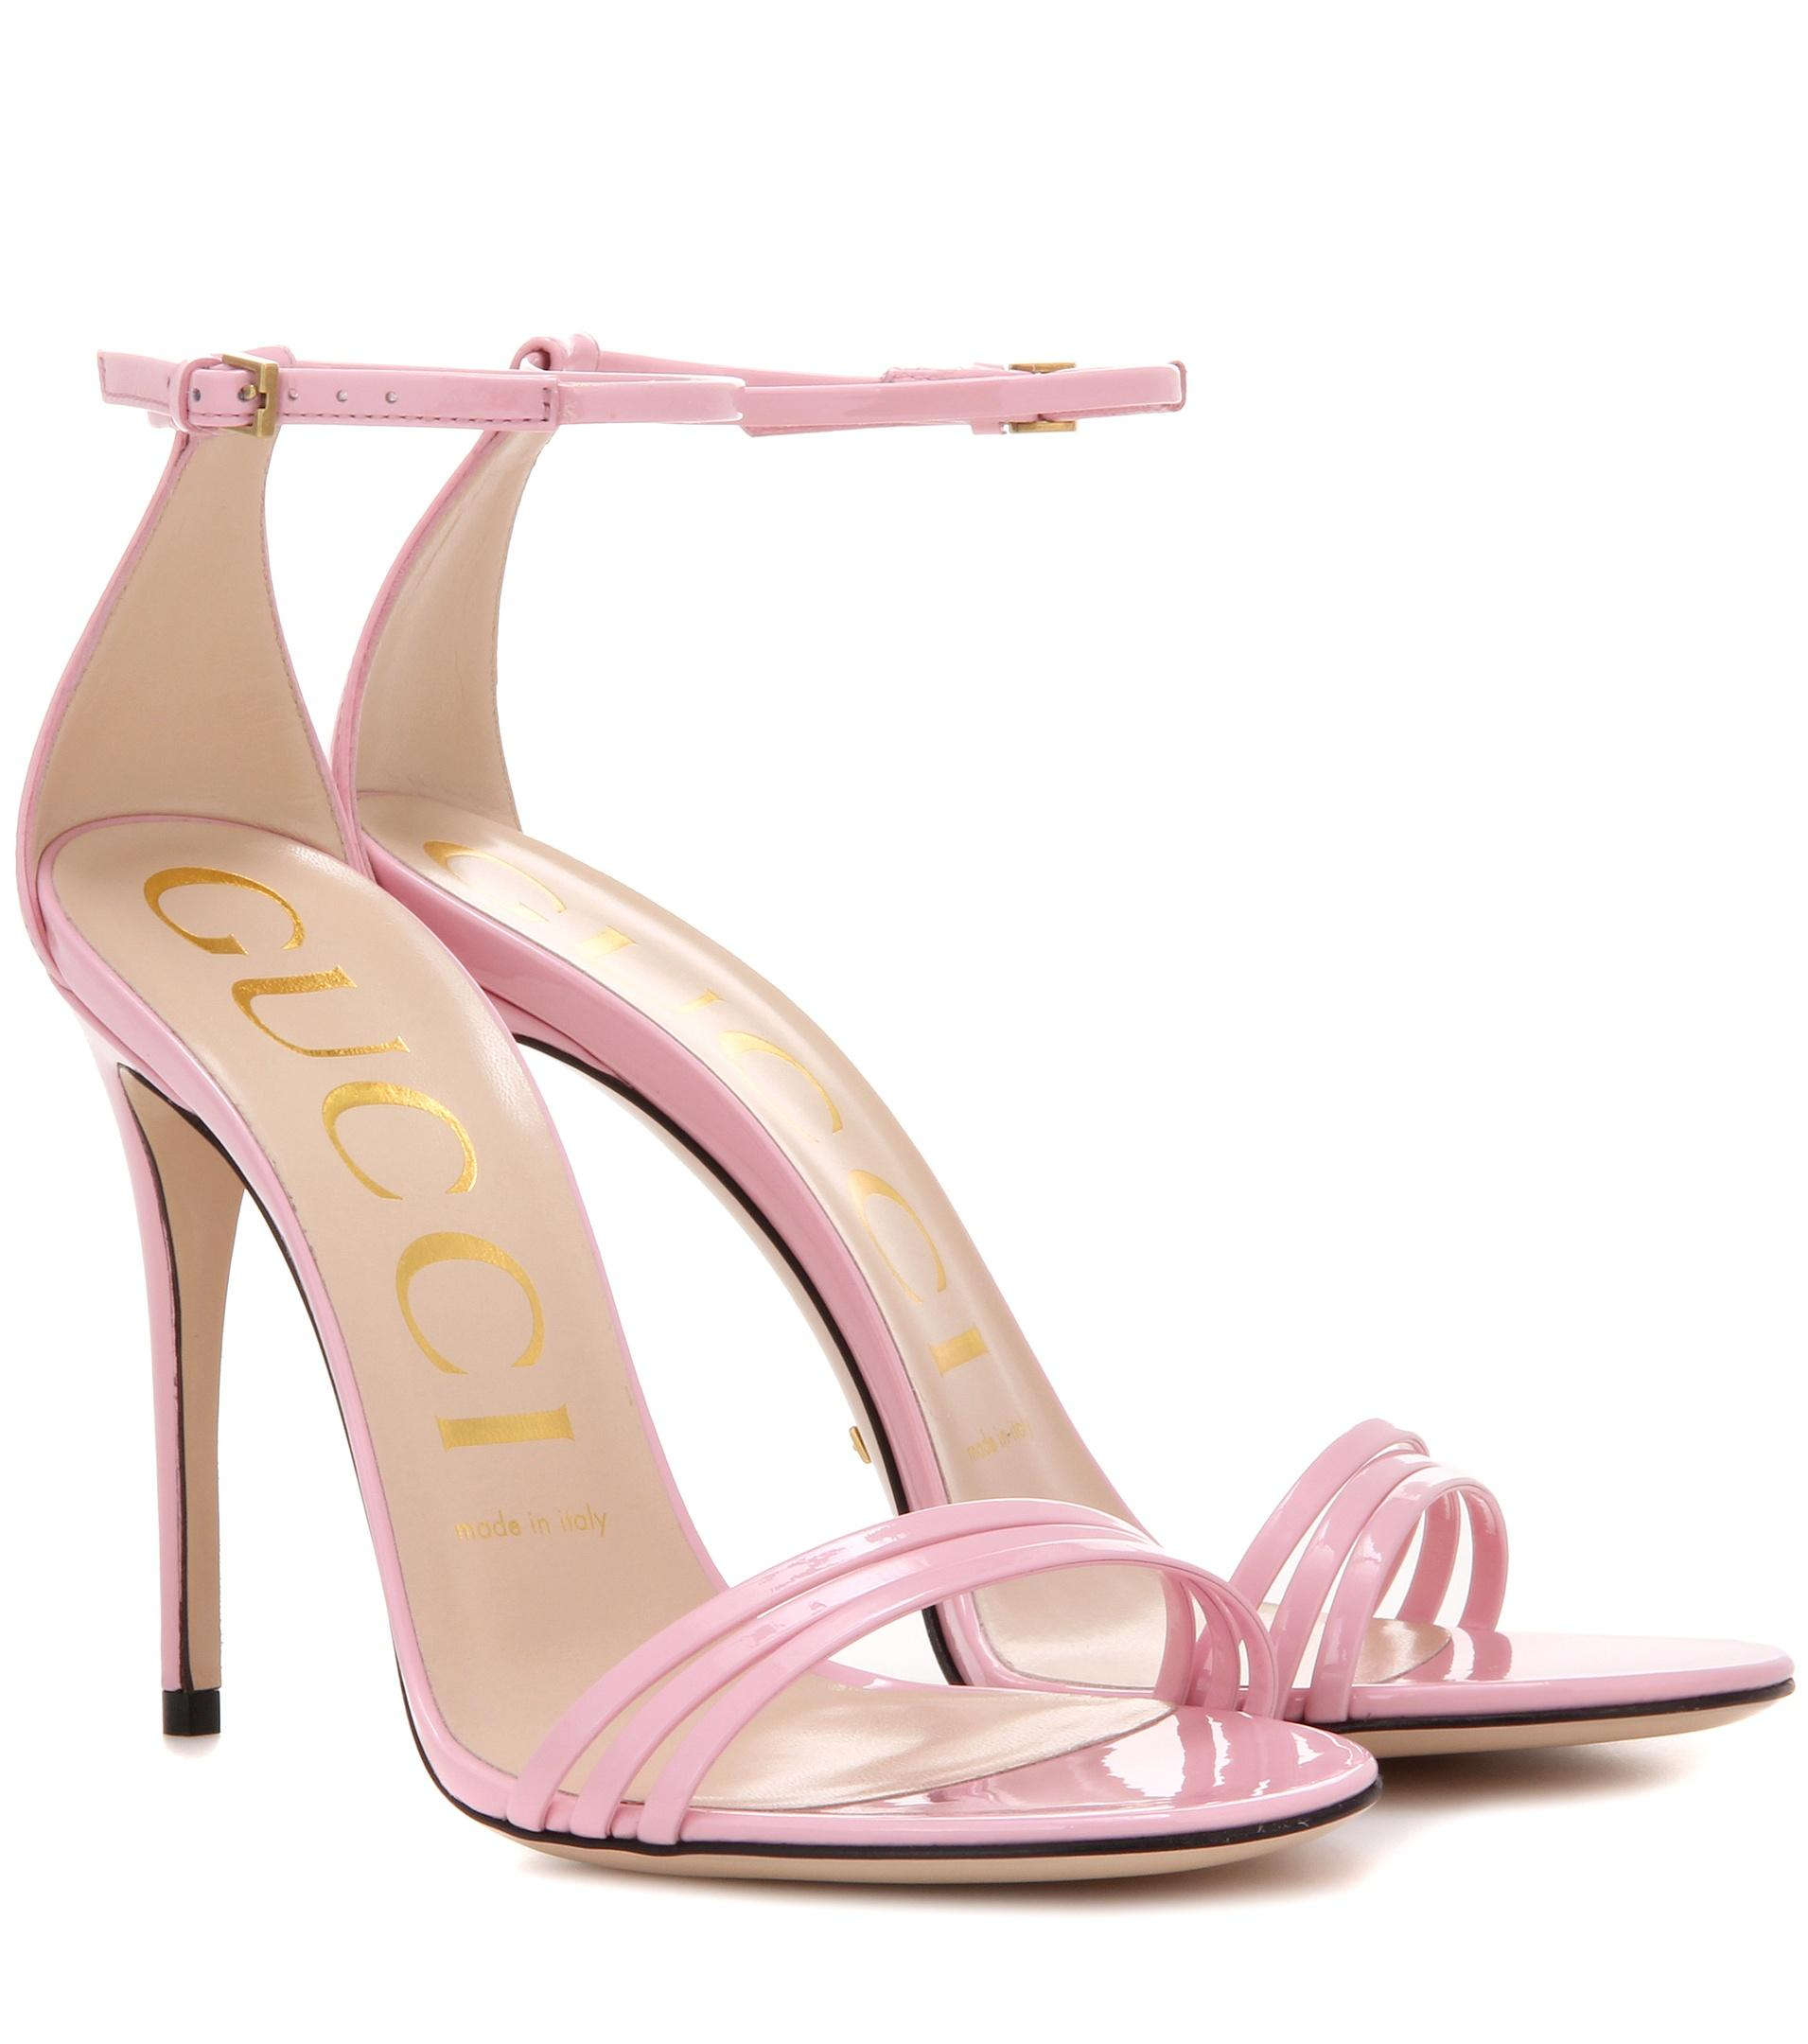 476284ddb5b8 Gucci Patent Leather Sandals in Pink - Lyst